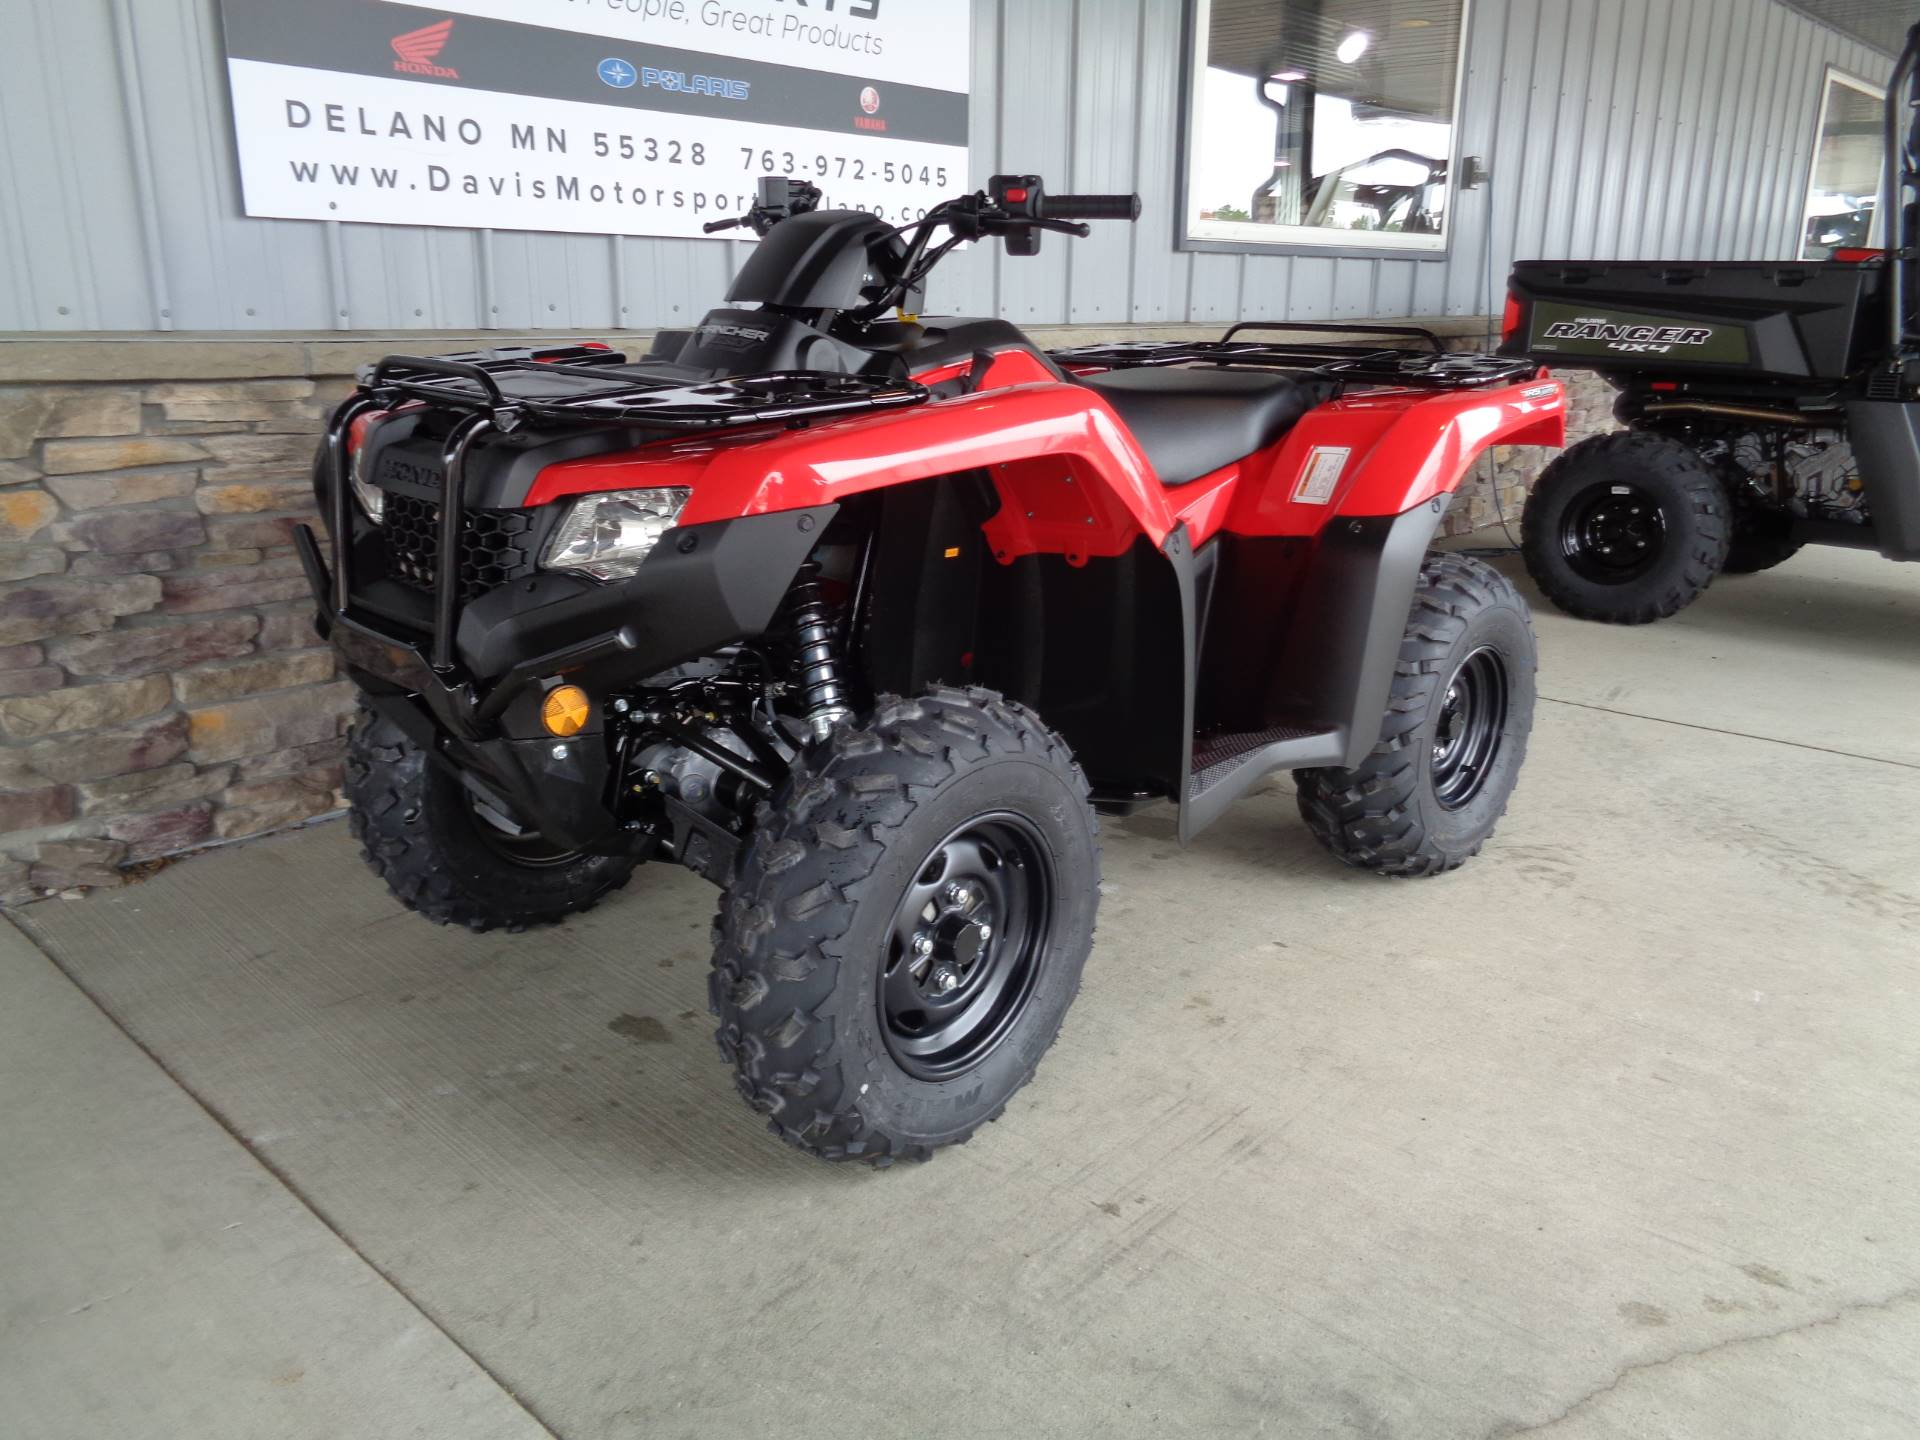 2020 Honda FourTrax Rancher 4x4 Automatic DCT IRS in Delano, Minnesota - Photo 4